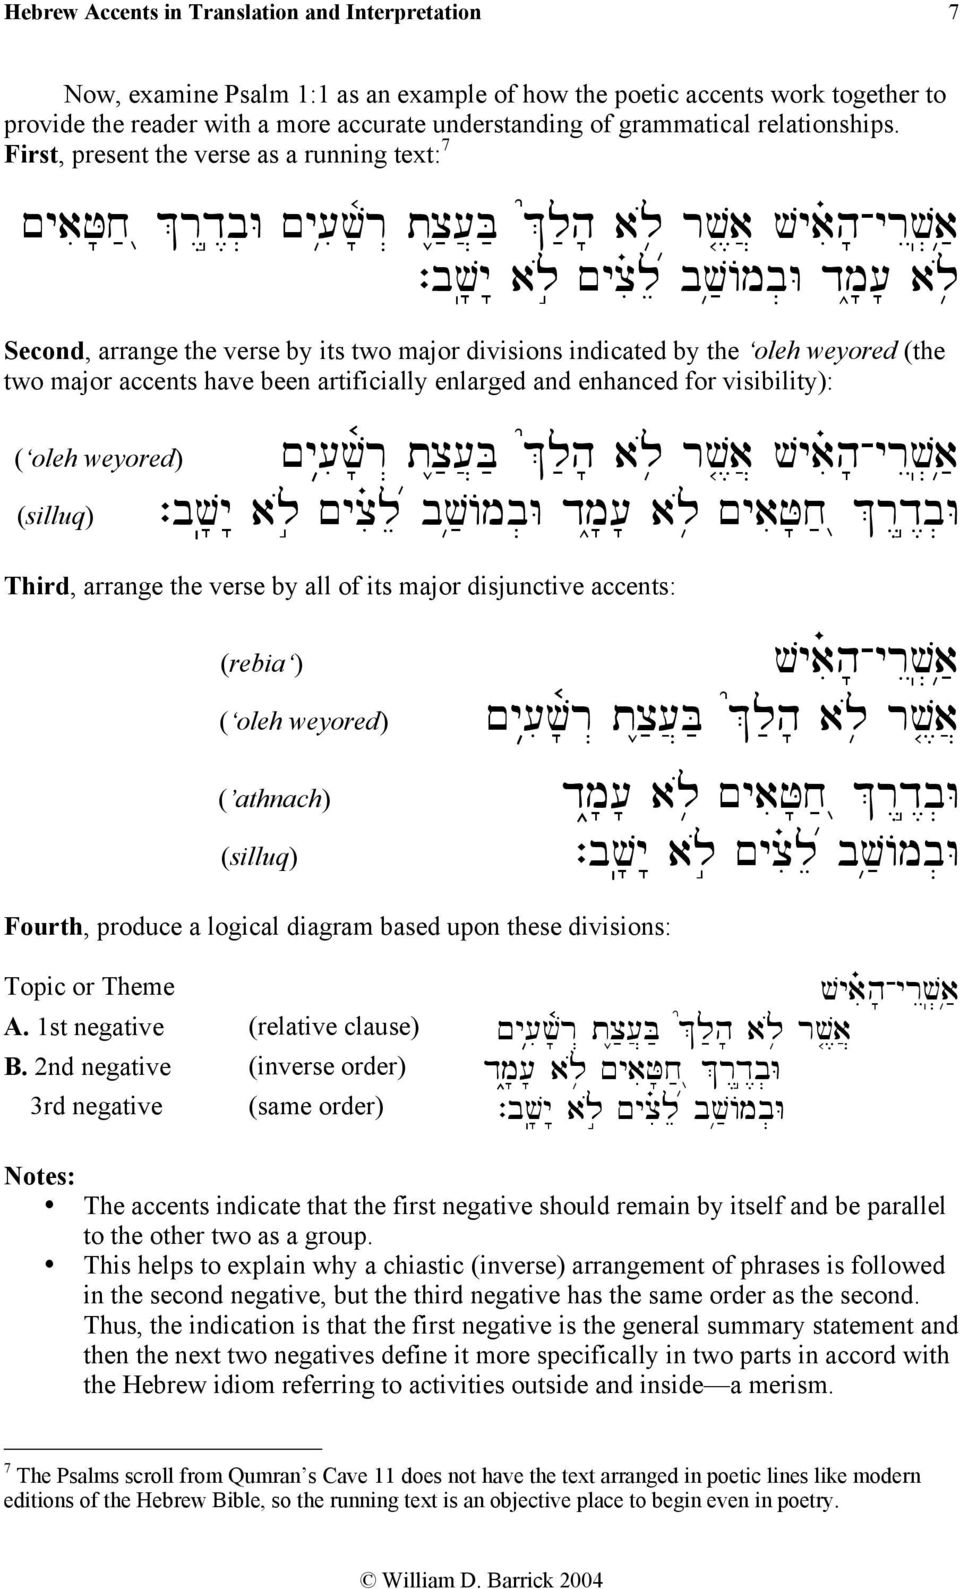 The Masoretic Hebrew Accents in Translation and